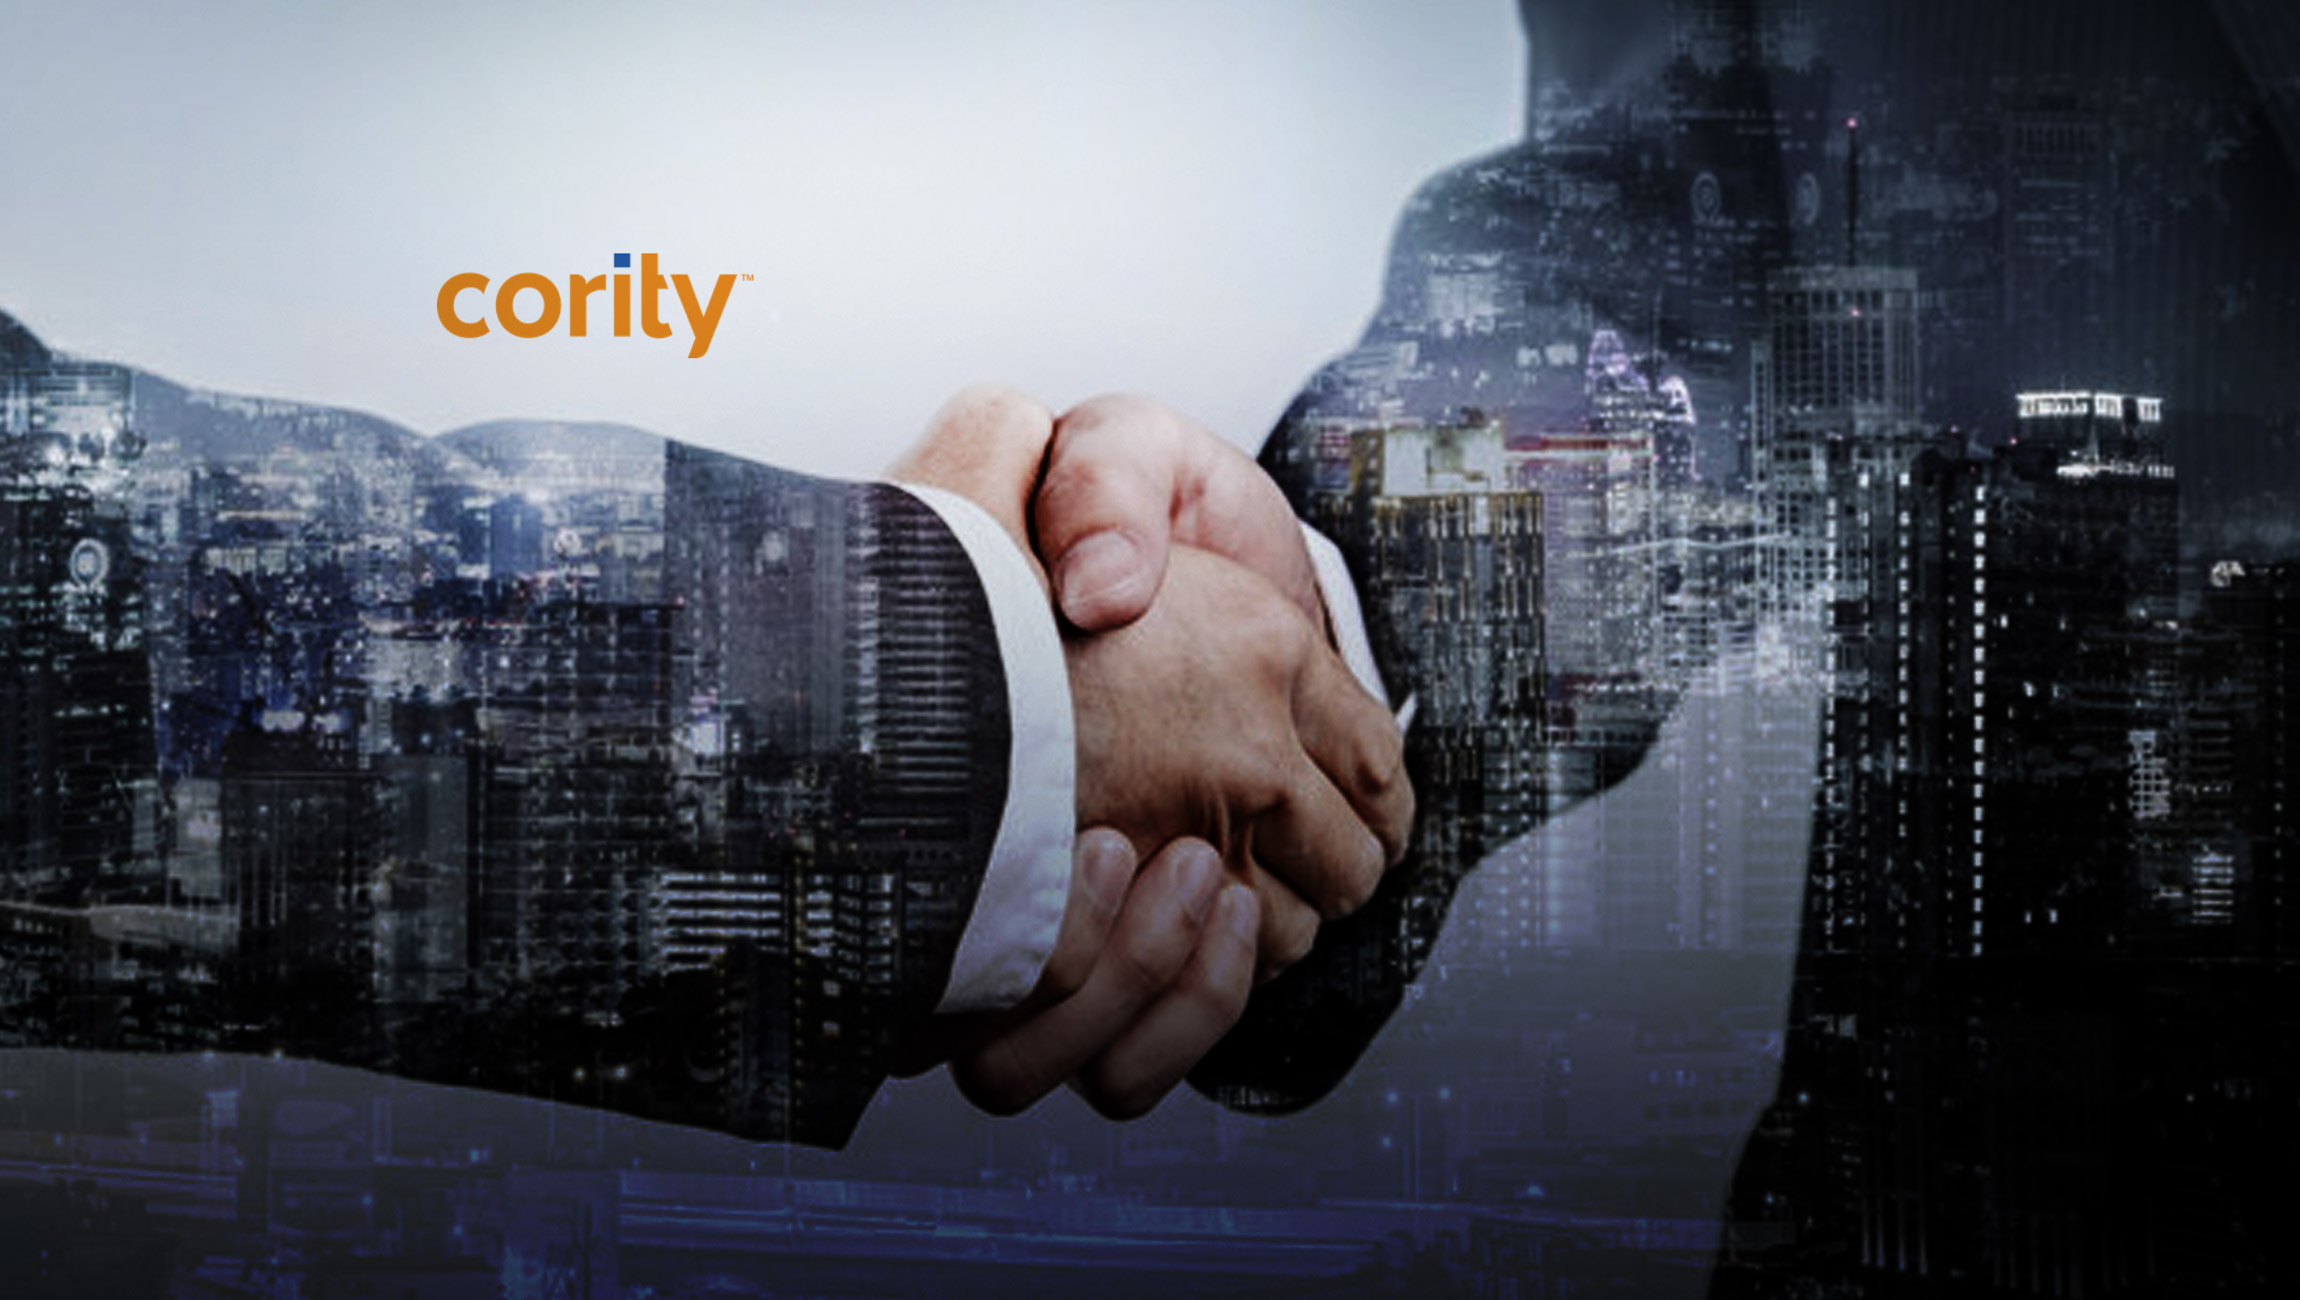 Cority-Announces-Partnership-with-European-EHS-and-CSR-Consultancy_-VP_White_-Enabling-Best-in-Class-Digital-Solutions-to-the-Global-Market